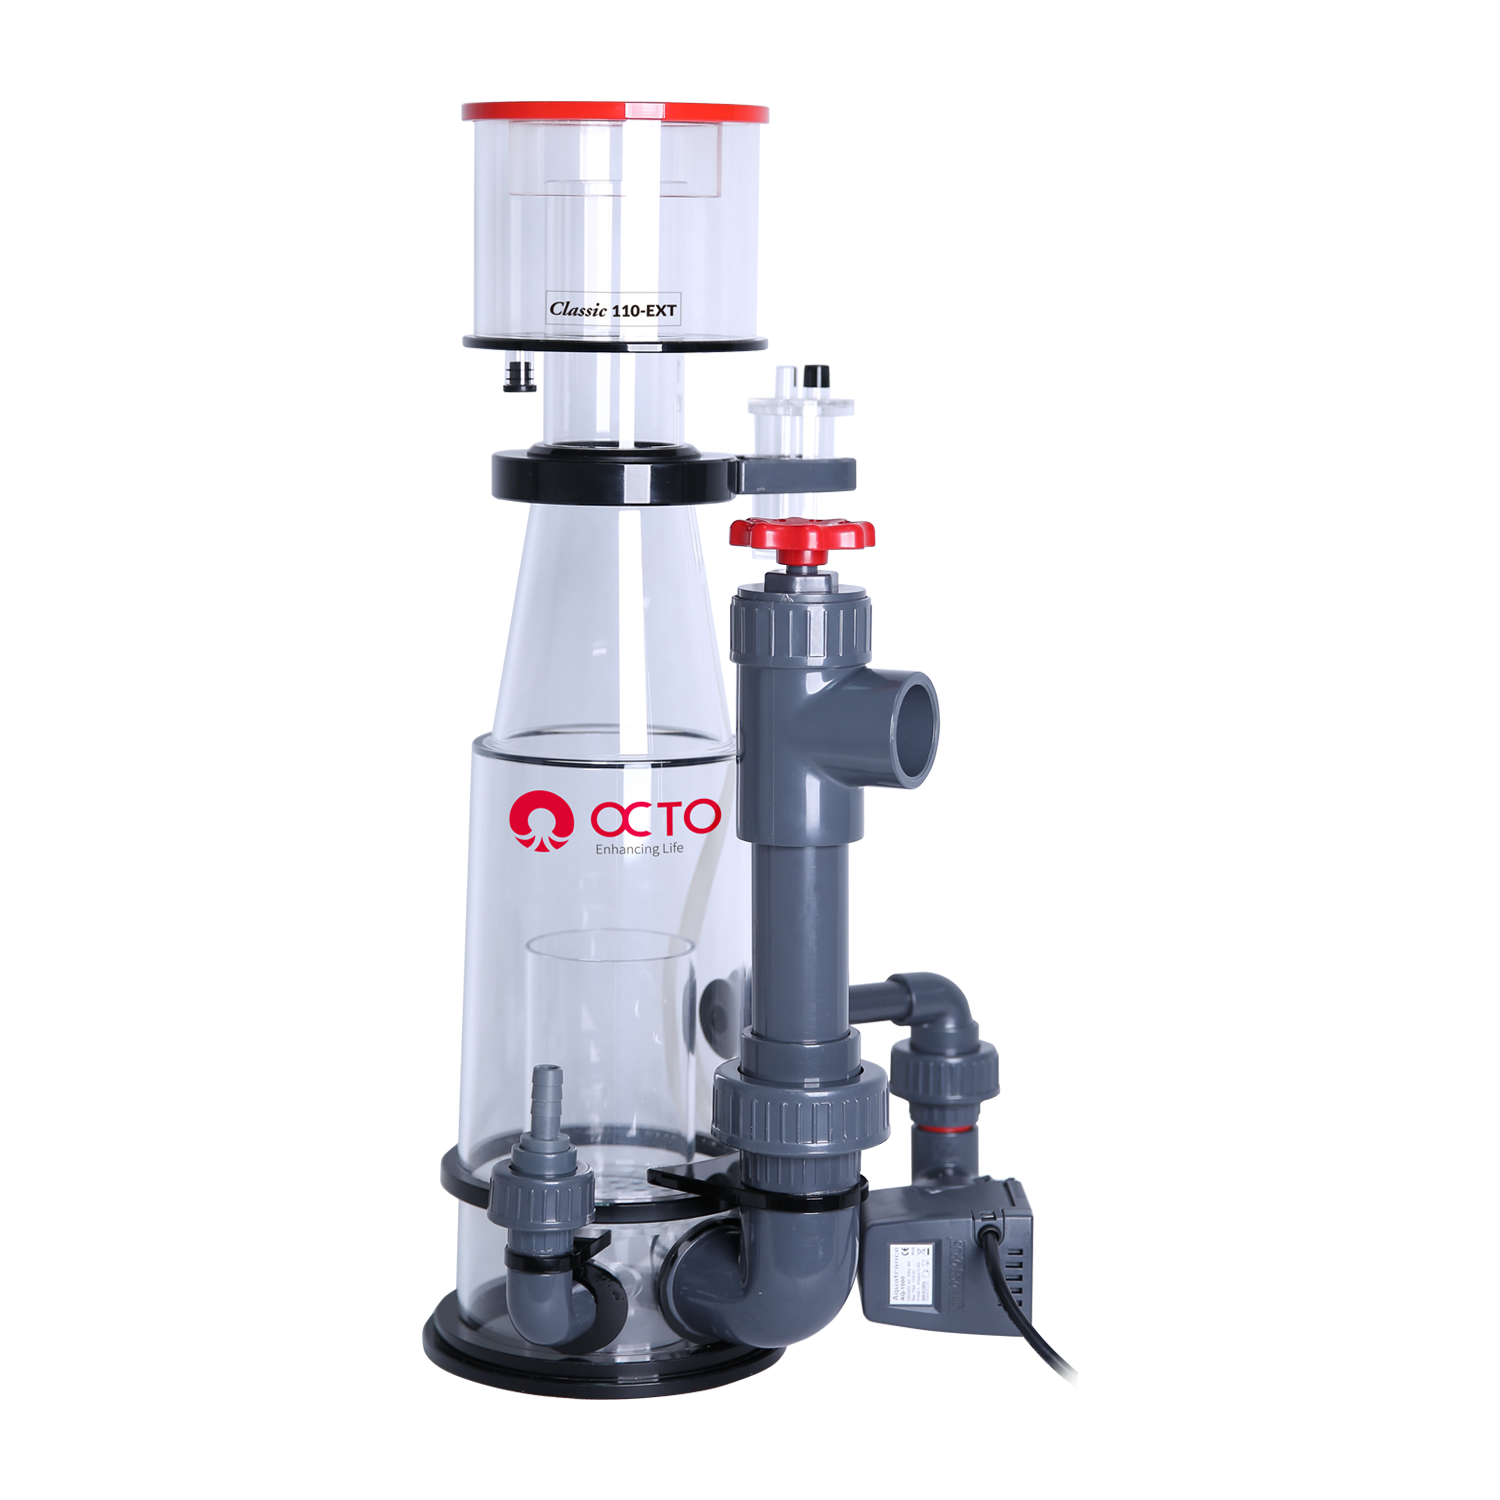 Reef Octopus Protein Skimmer Classic 110-INT